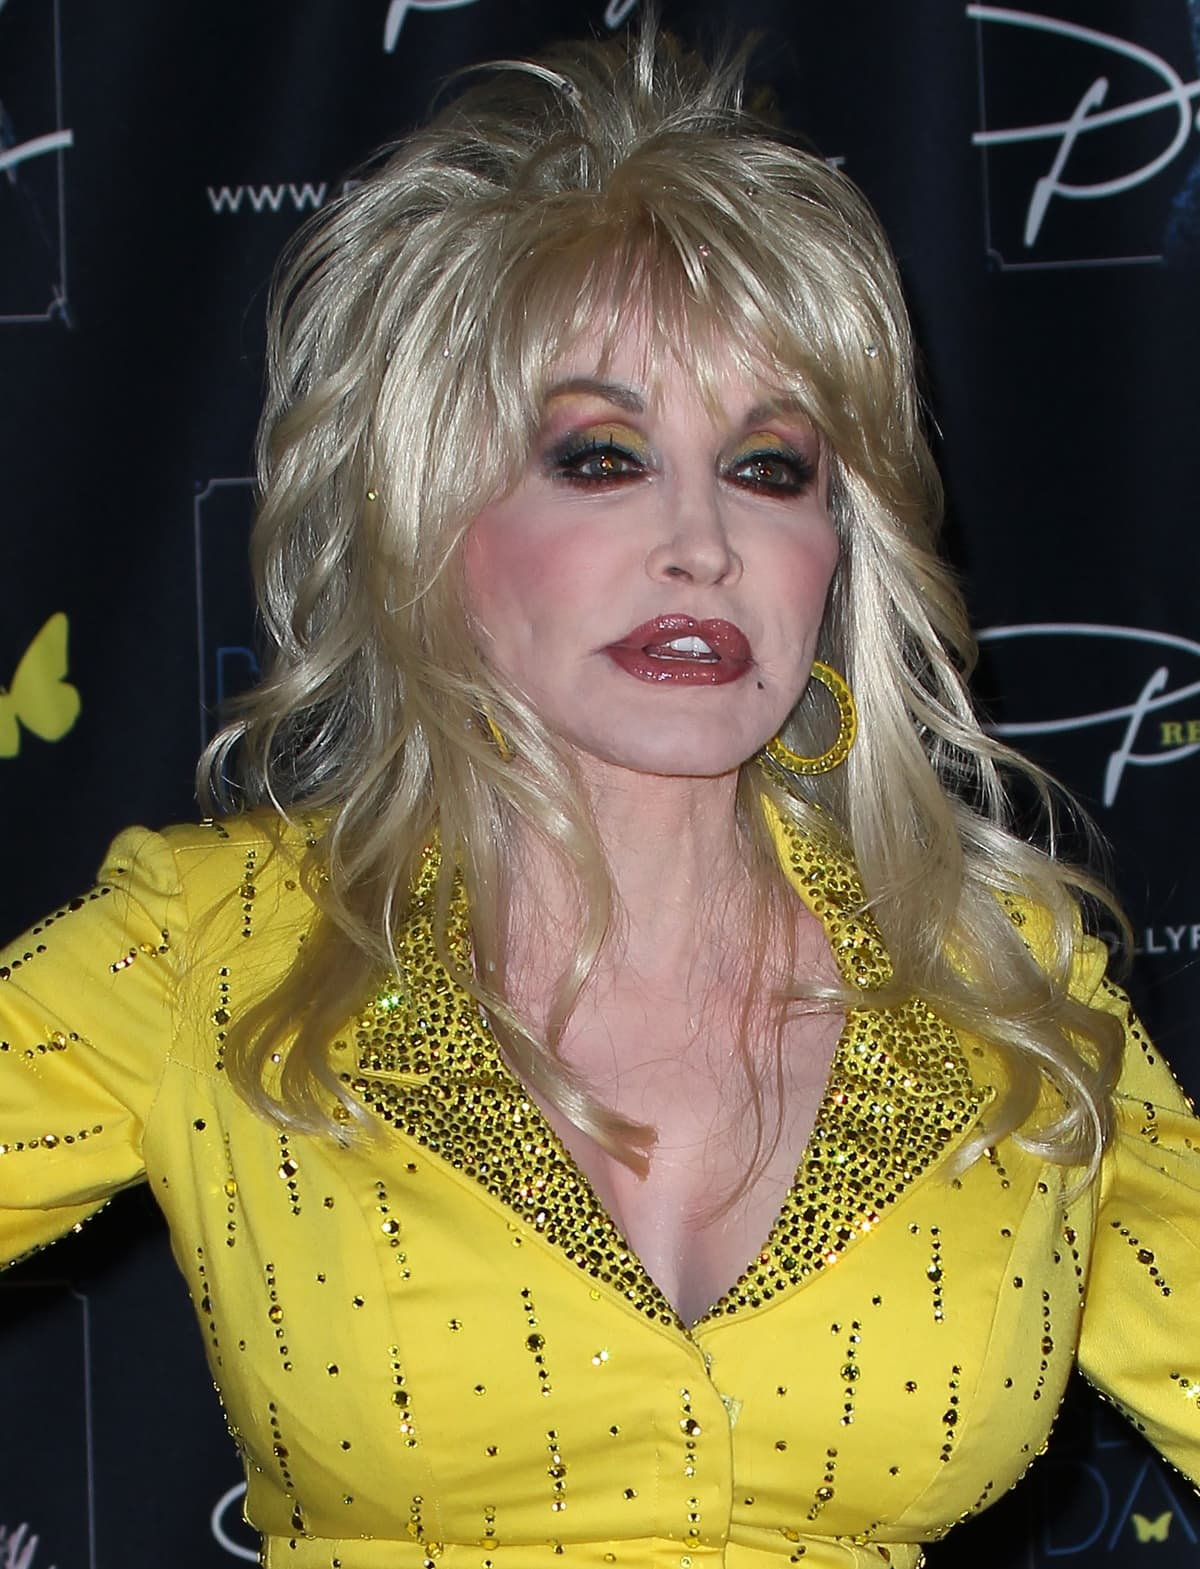 Dolly Parton shows off her boobs at the CMA Music Festival